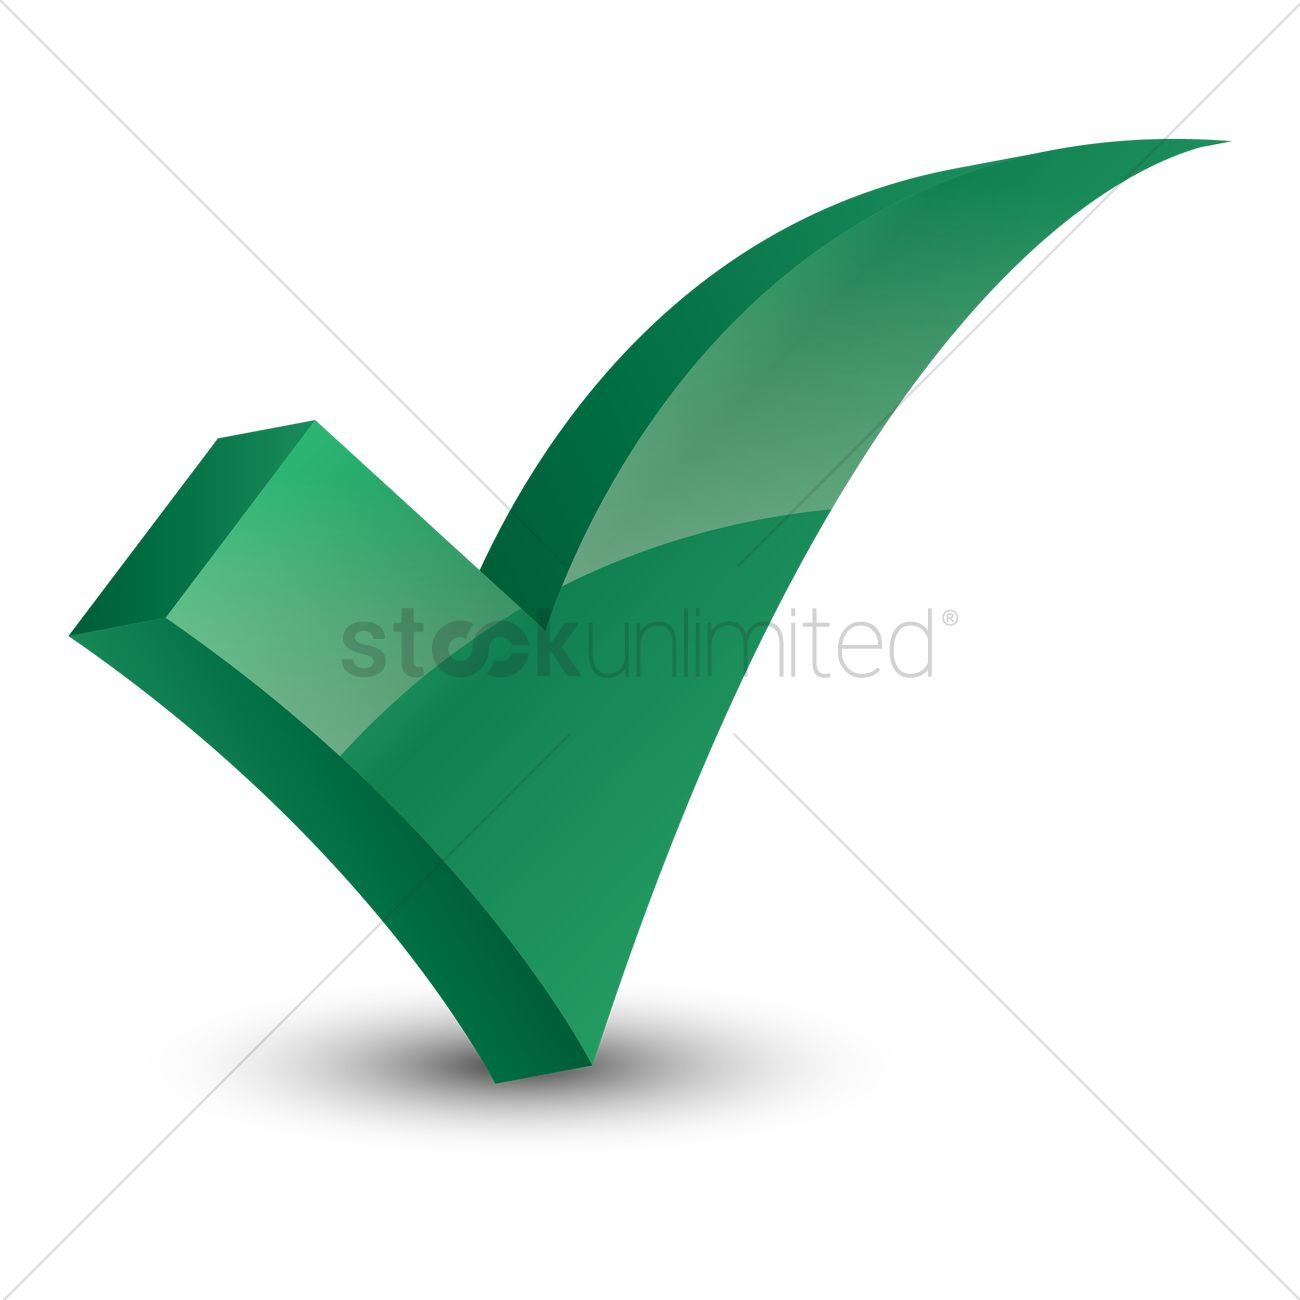 check mark icon vector image 1631062 stockunlimited rh stockunlimited com check mark graphic excel check mark graphics downloadable